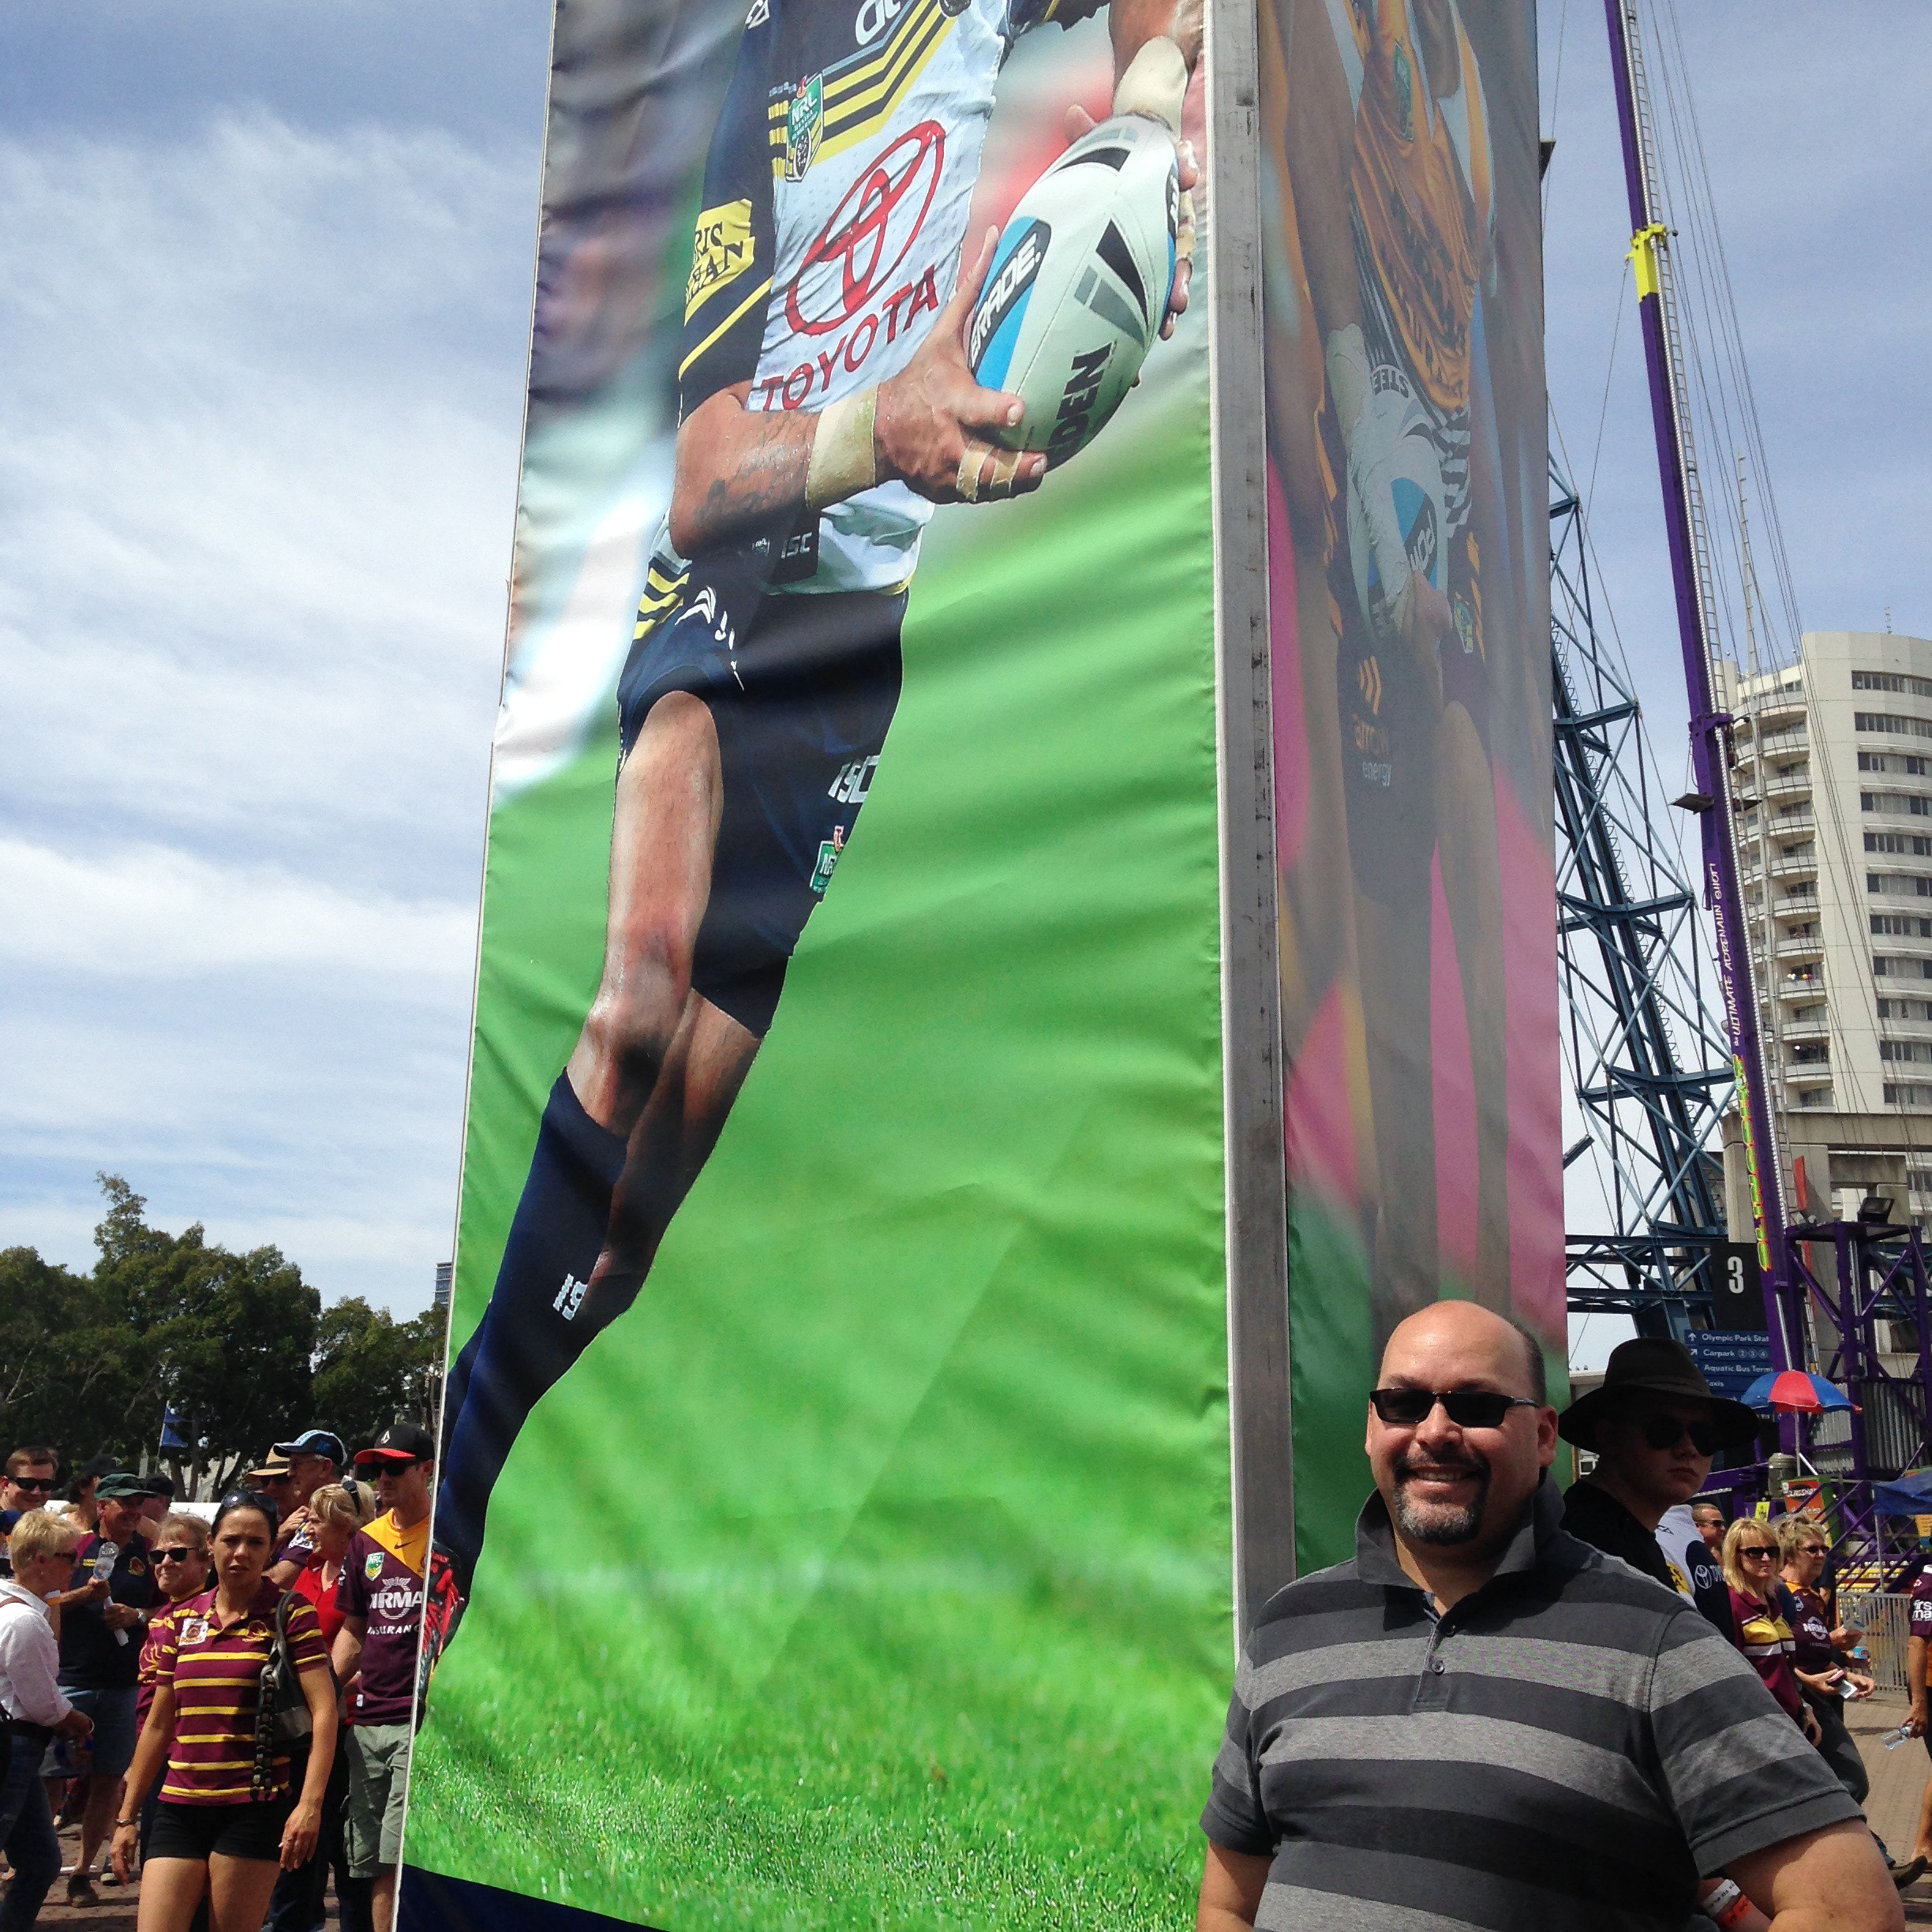 The Game Of Sport S 2015 Nrl Grand Final Diary Part 1 The Game Of